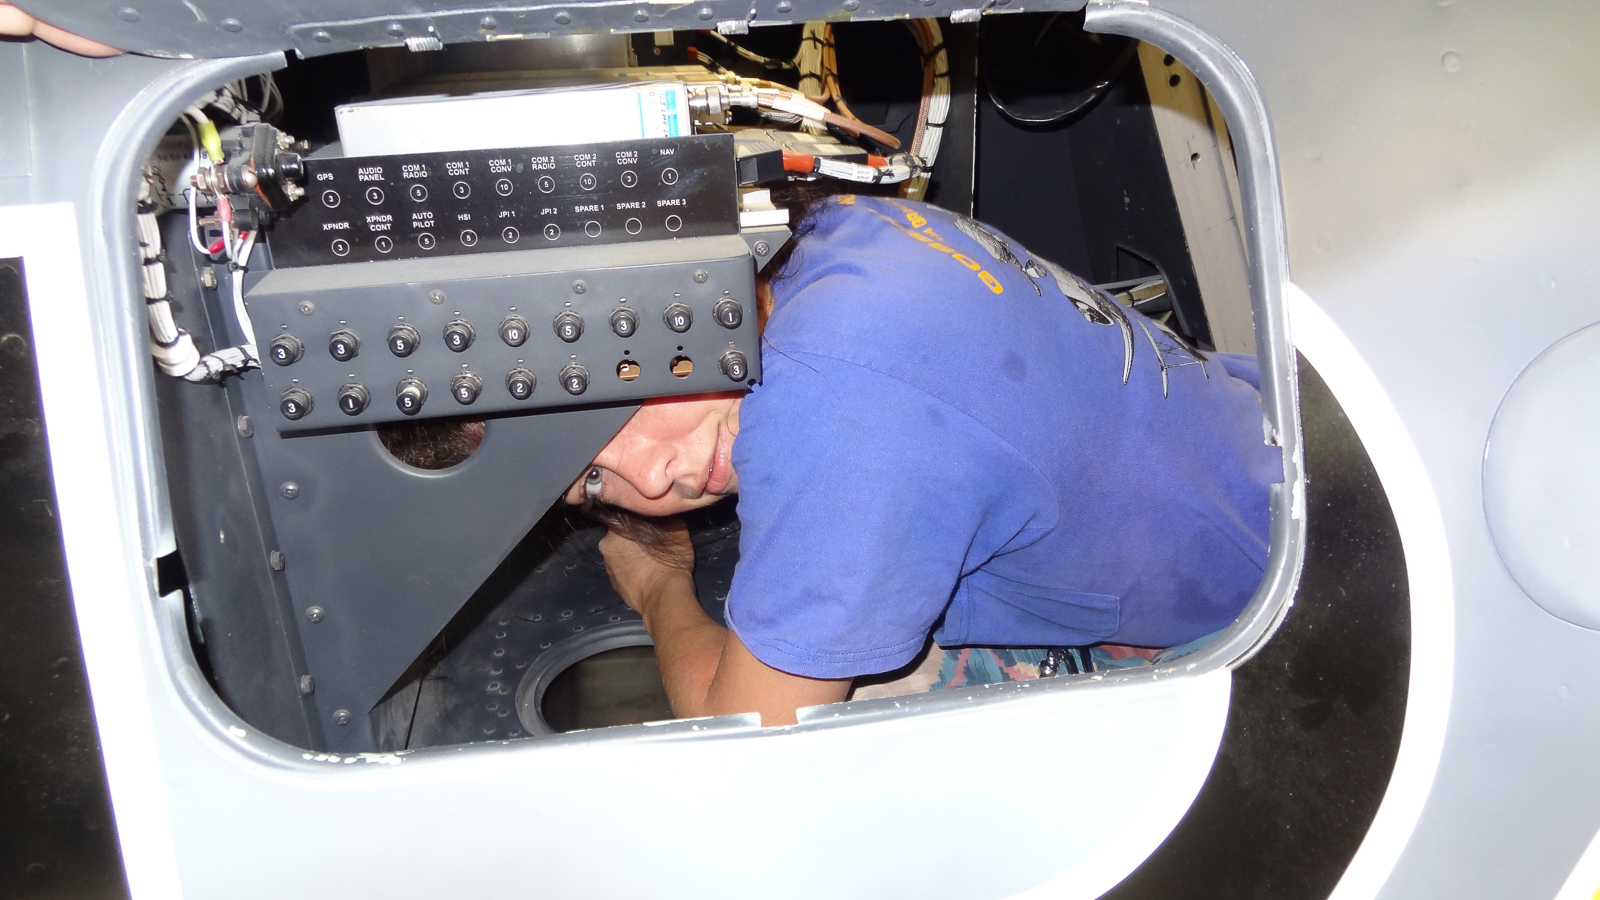 Lindsey Goss inside the tight confines of the FW-190 fuselage installing some of the aircraft's wiring harnesses. (photo via GossHawk Unlimited)